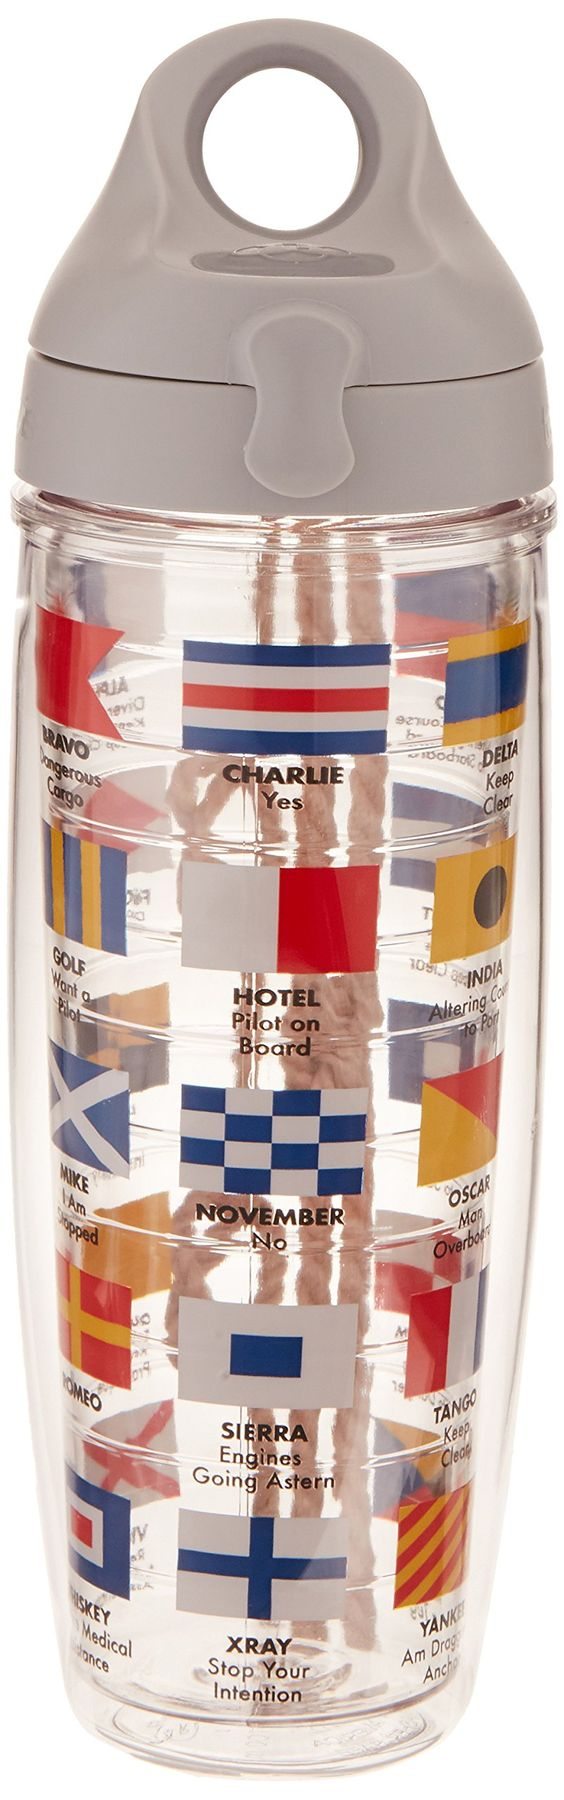 Tervis Water Bottle, Nautical Flags. Keeps hot drinks hot and cold drinks cold. Co-polyester BPA and Melamine free construction. Microwave, freezer & dishwasher safe. Unconditional Lifetime Guarantee. Made in the USA.